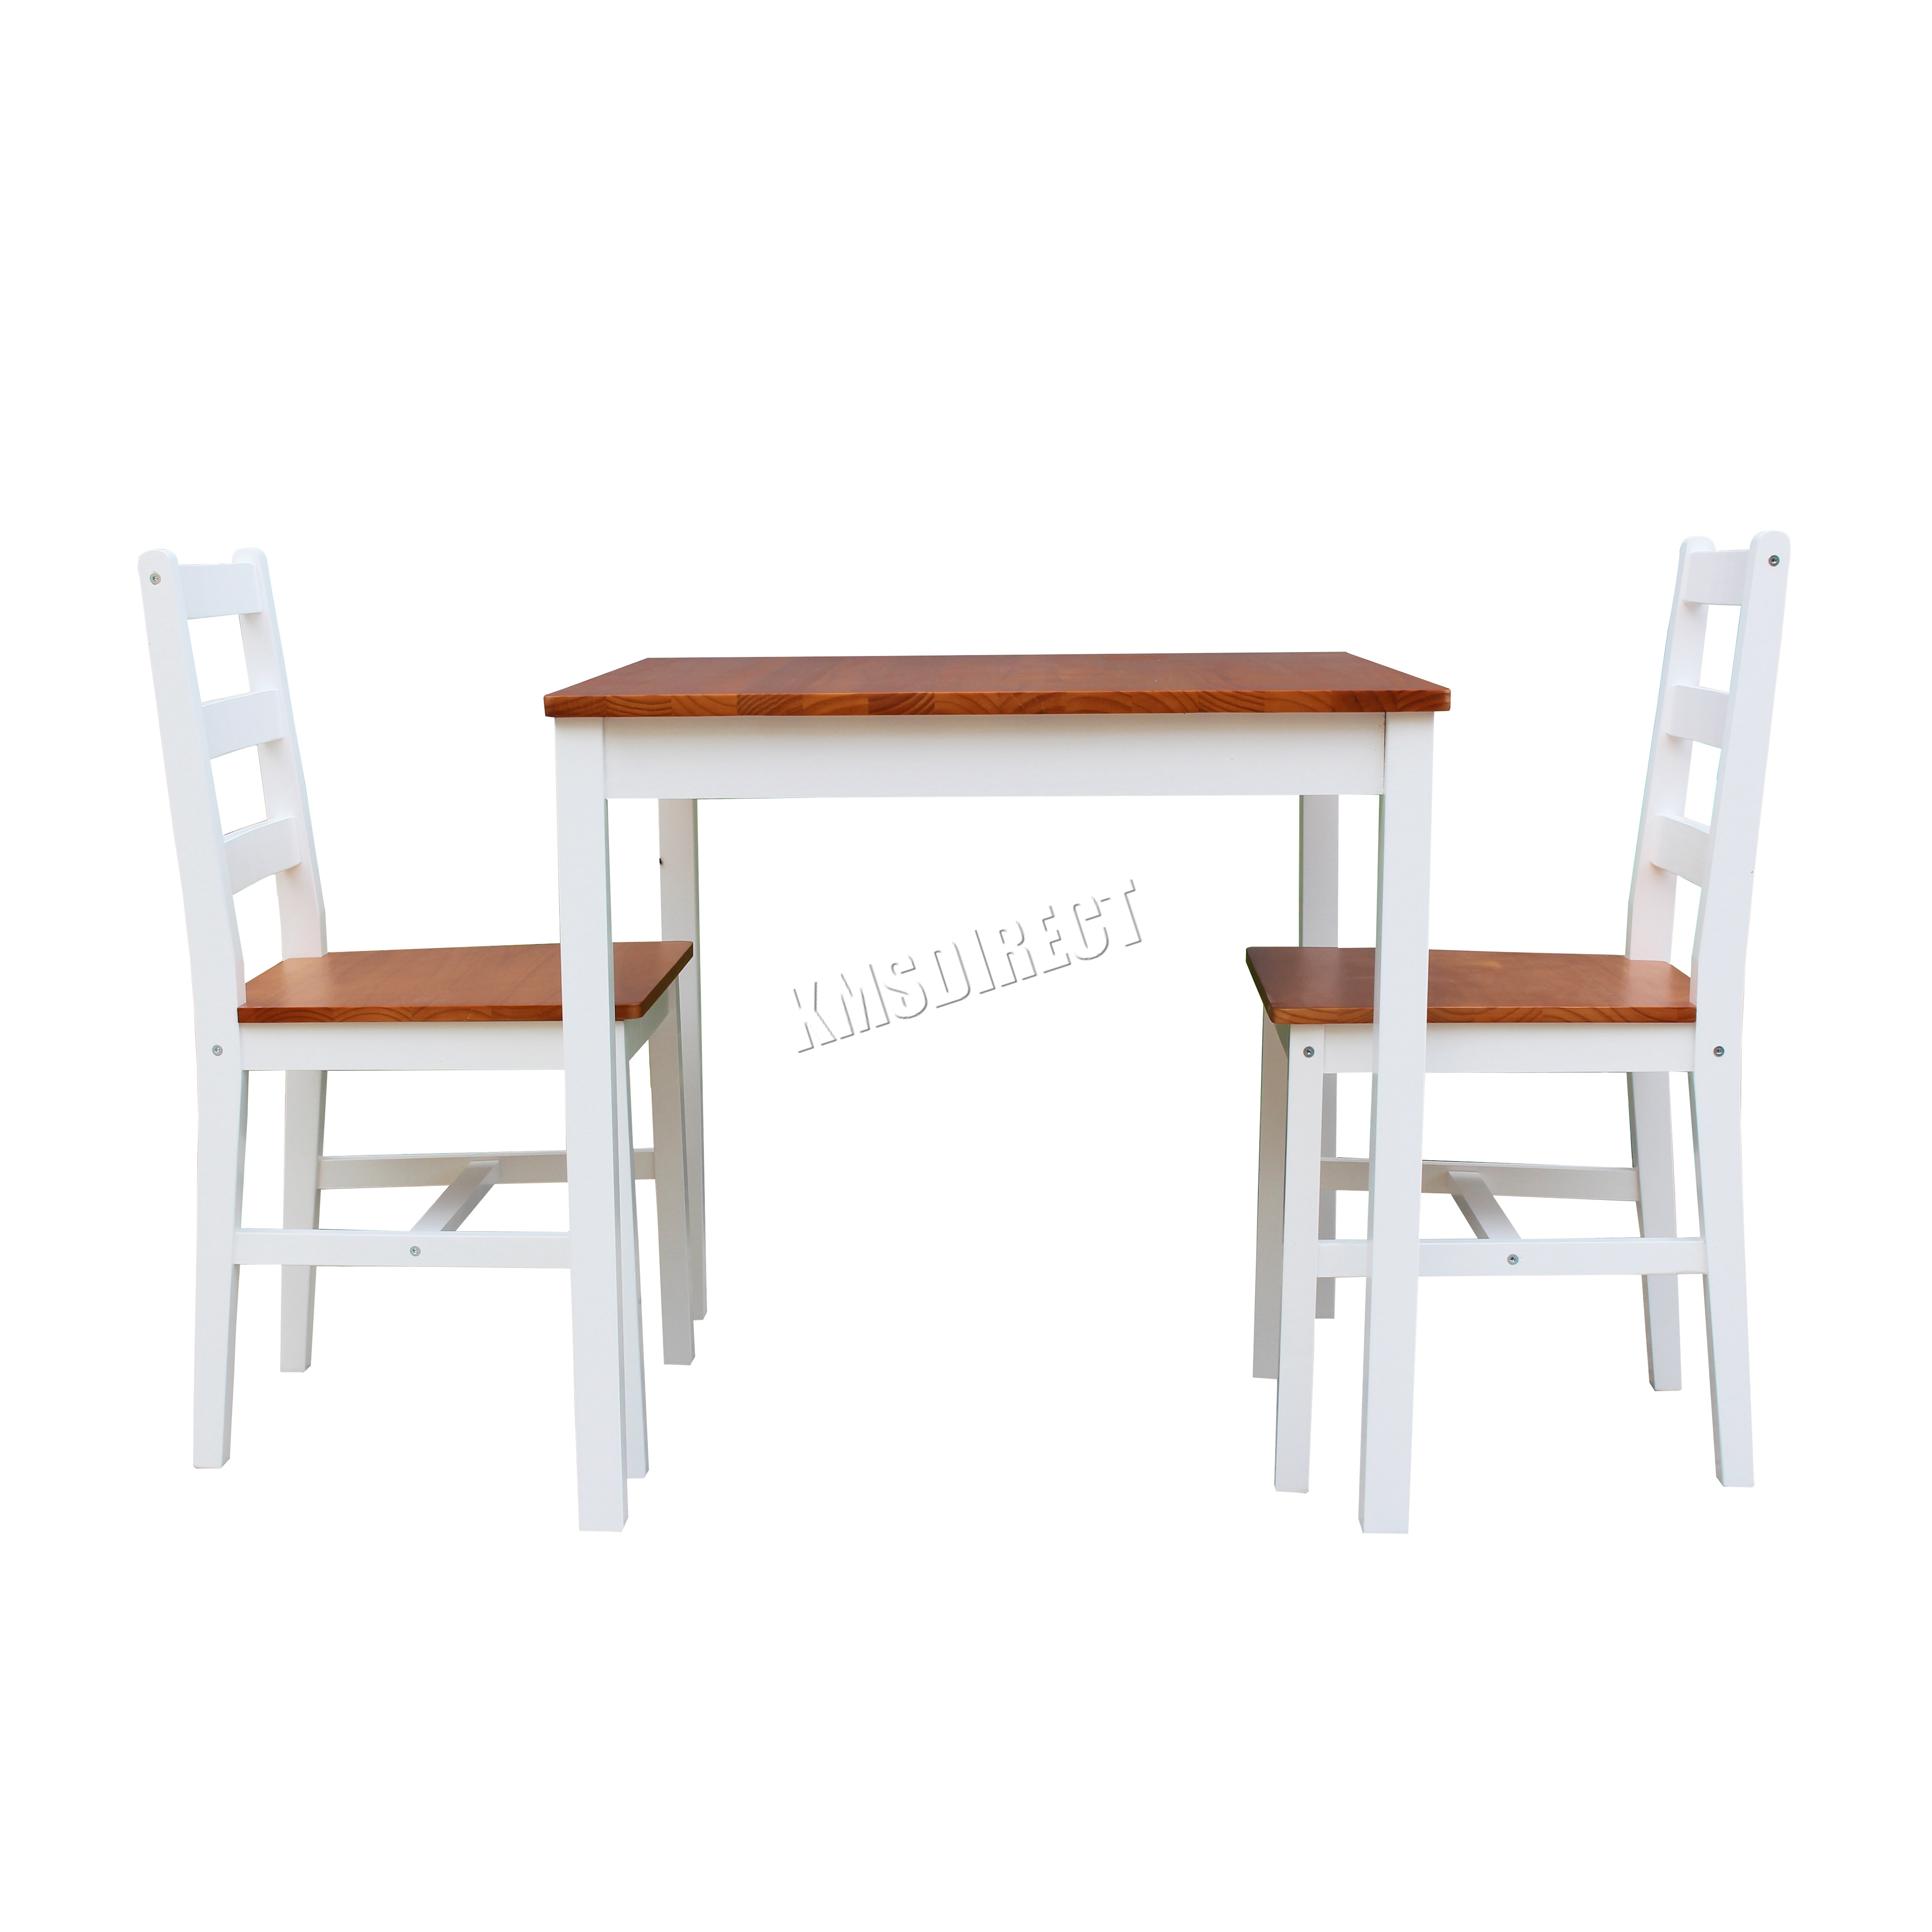 Ikea Kitchen Chair Chair Chairs Wooden Chair Pine Dining: WestWood Solid Pine Wood Dining Table With 2 Chairs Set